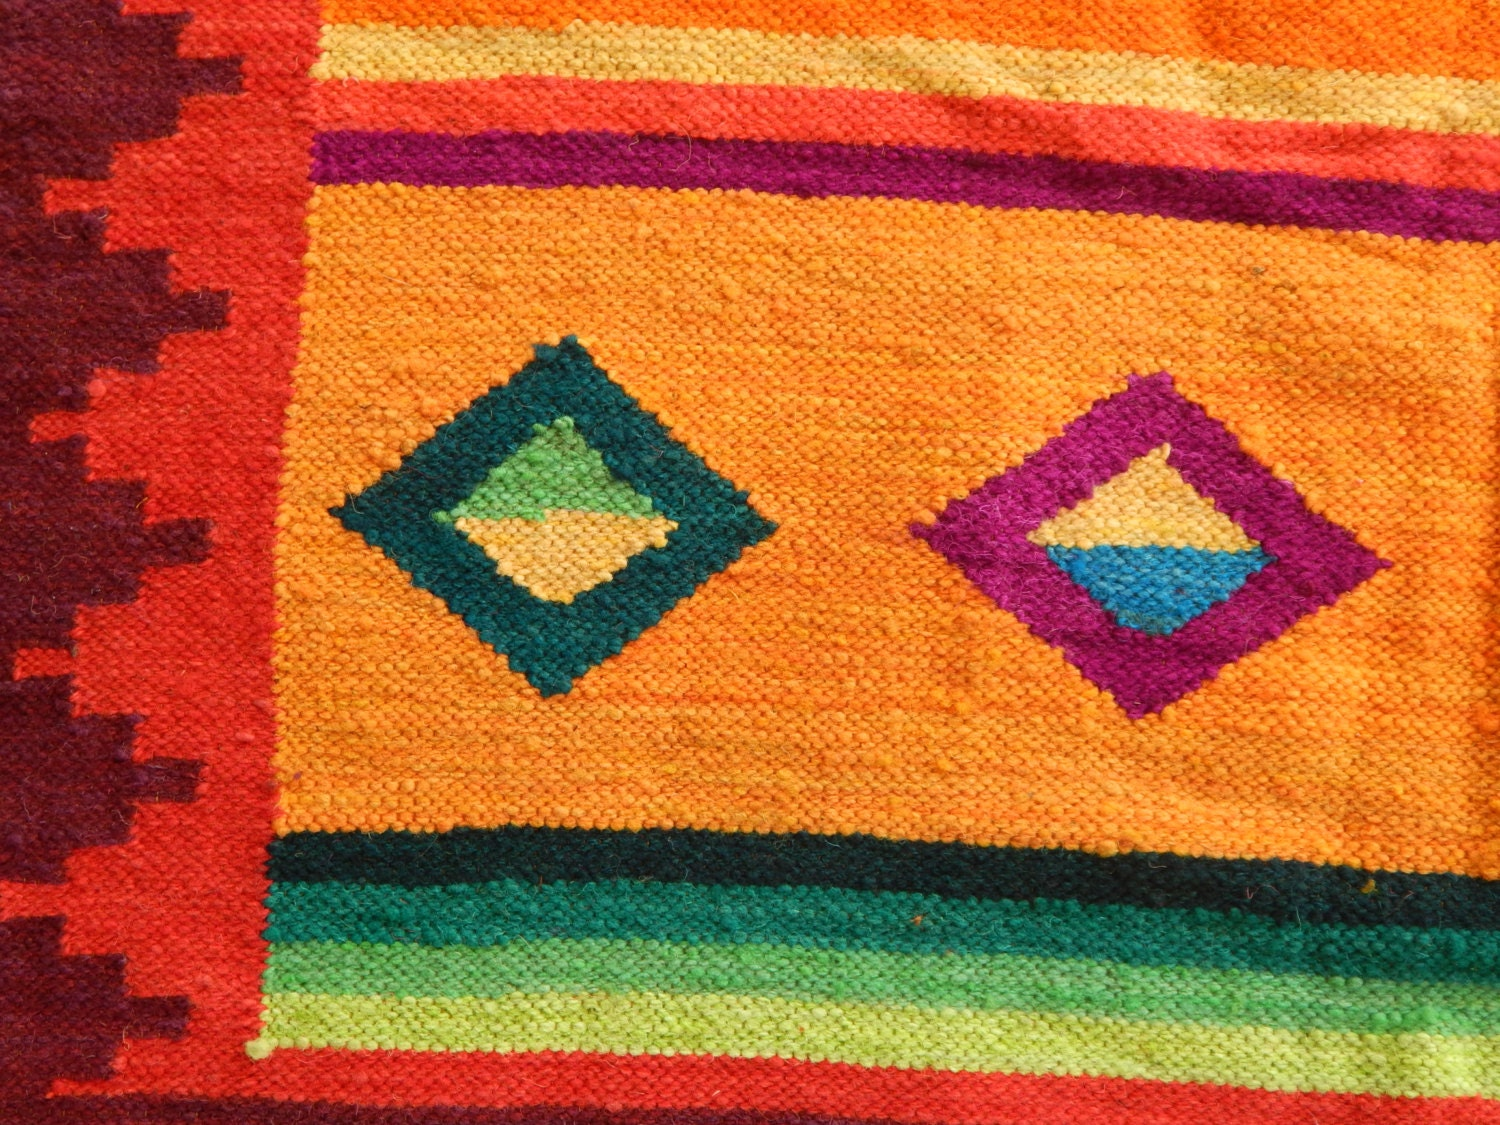 abstract brights rug handwoven in ayacucho peru large 5x7. Black Bedroom Furniture Sets. Home Design Ideas